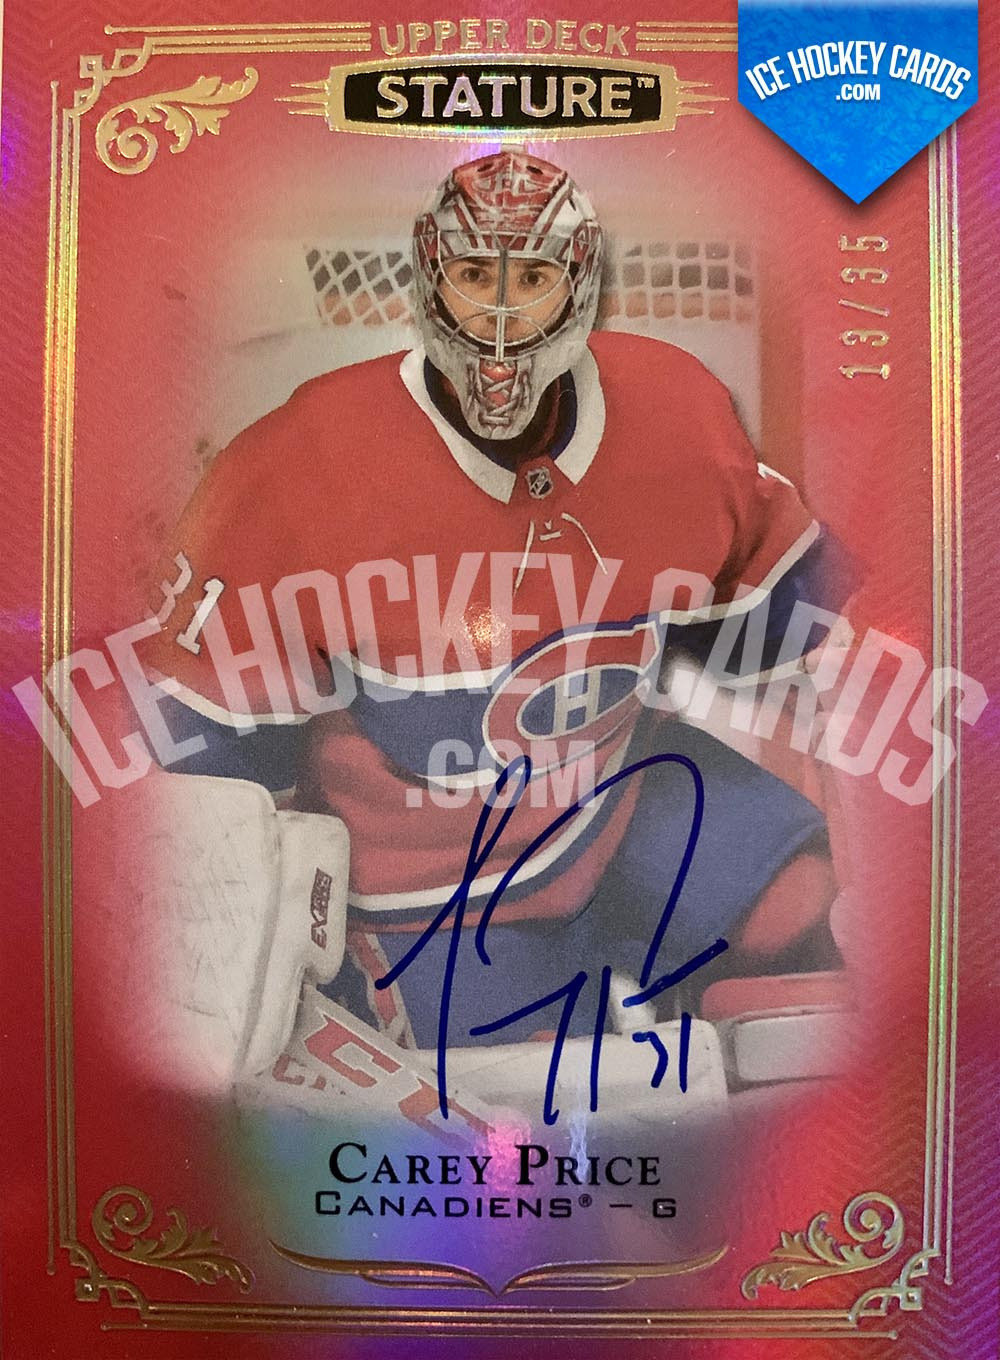 Upper Deck - Stature 2019-20 - Carey Price Autograph Card Red # to 35